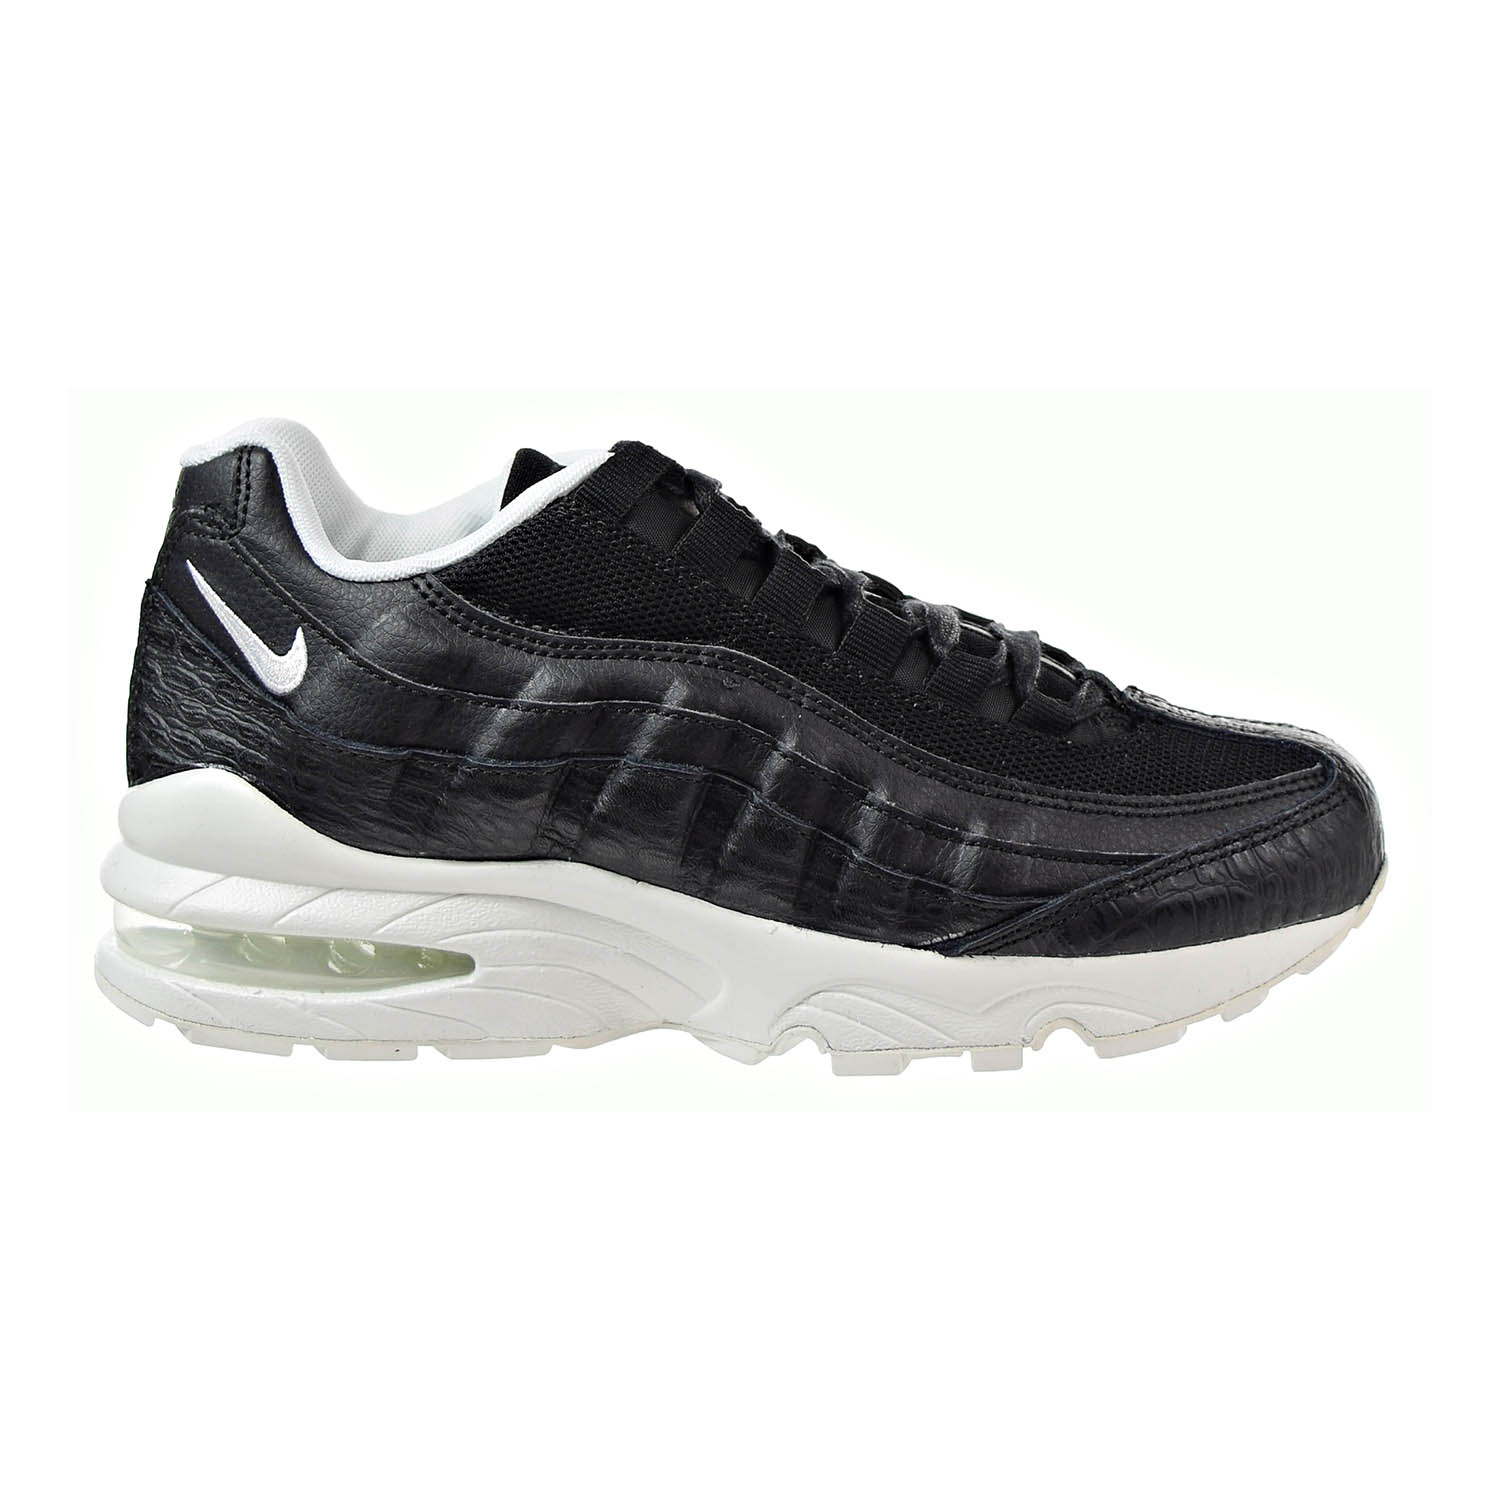 online store e44f8 4dc83 Details about Nike Air Max 95 SE Big Kids  Shoes Black Summit White  922173-002